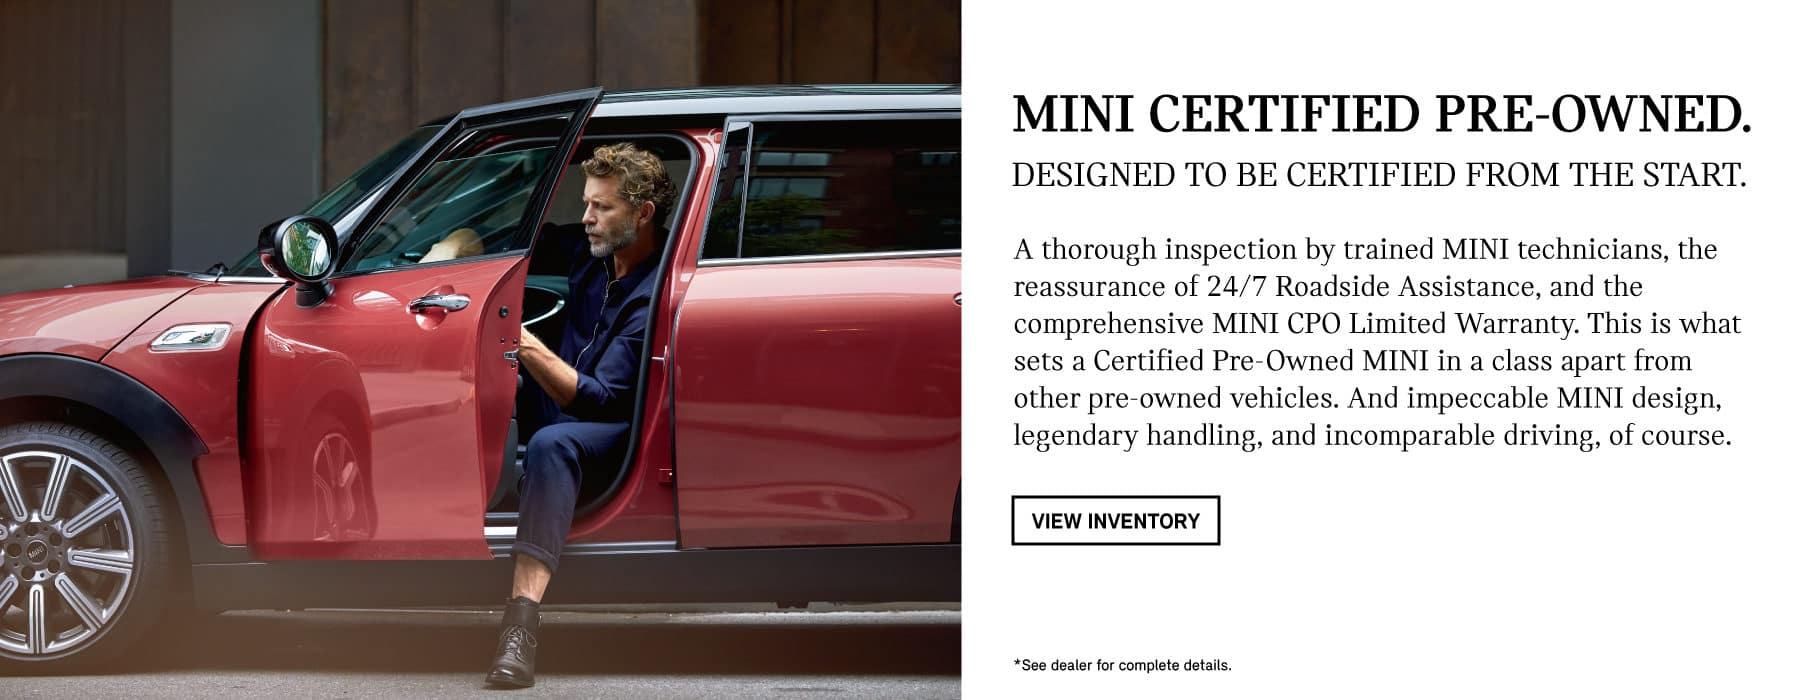 A thorough inspection by trained MINI technicians, the reassurance of 24/7 Roadside Assistance, and the comprehensive MINI CPO Limited Warranty. This is what sets a Certified Pre-Owned MINI in a class apart from other pre-owned vehicles. And impeccable MINI design, legendary handling, and incomparable driving, of course. CLICK TO VIEW INVENTORY.